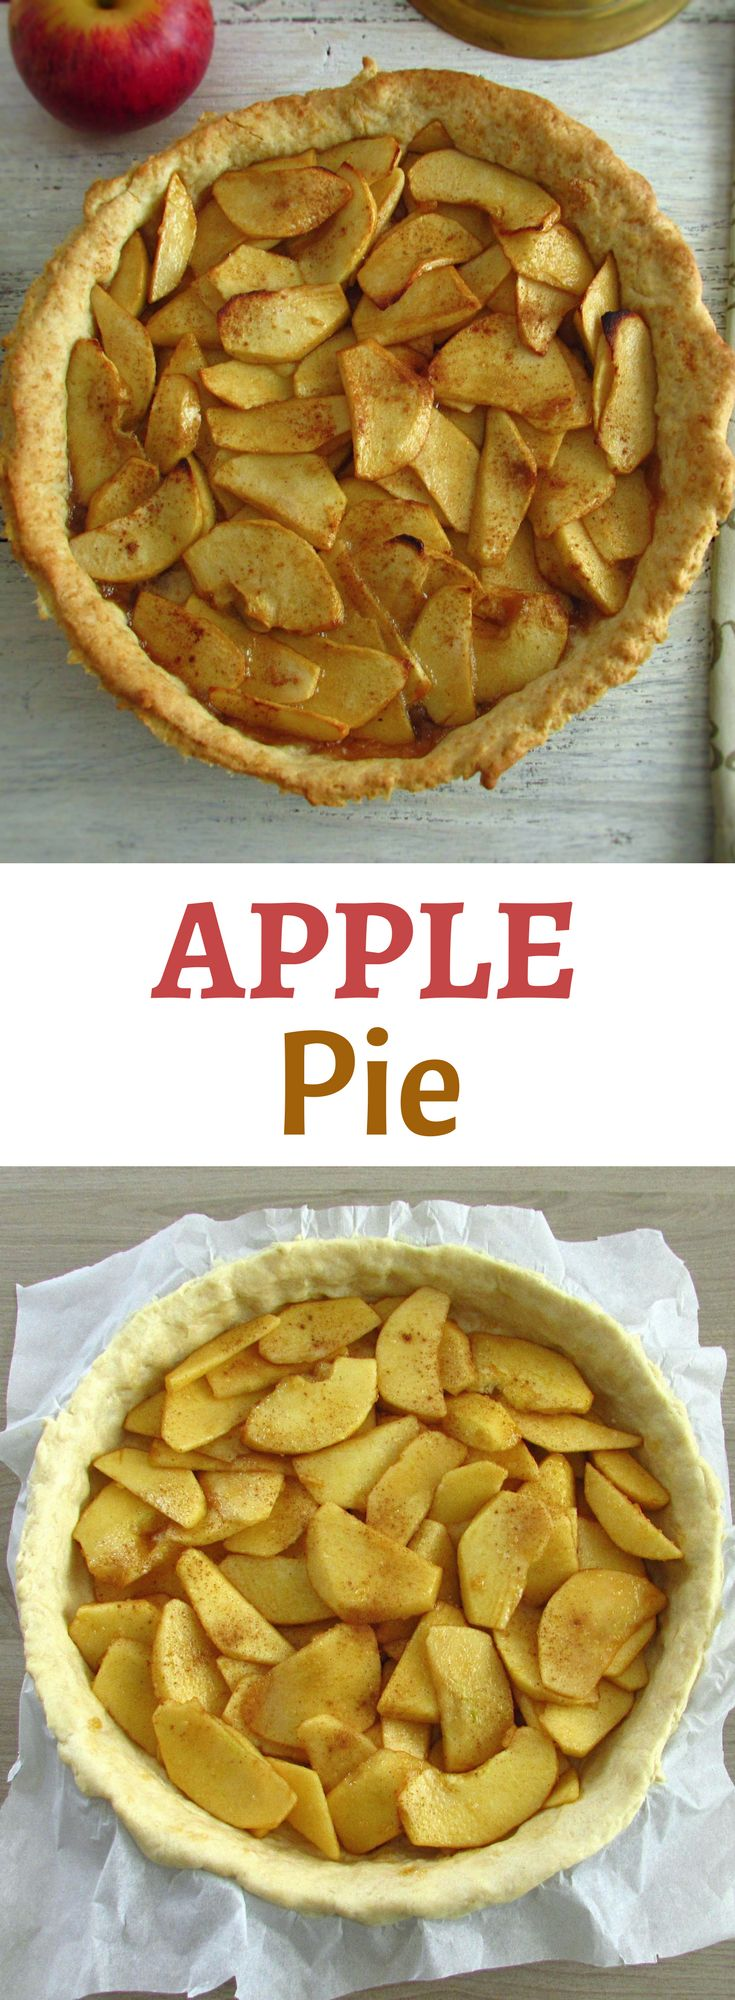 Apple pie | Food From Portugal. If you want to prepare a delicious pie for a special dessert, this apple pie recipe is perfect for you! It's very tasty, has excellent presentation and everyone will like the pleasant taste of the apple! #recipe #apple #pie